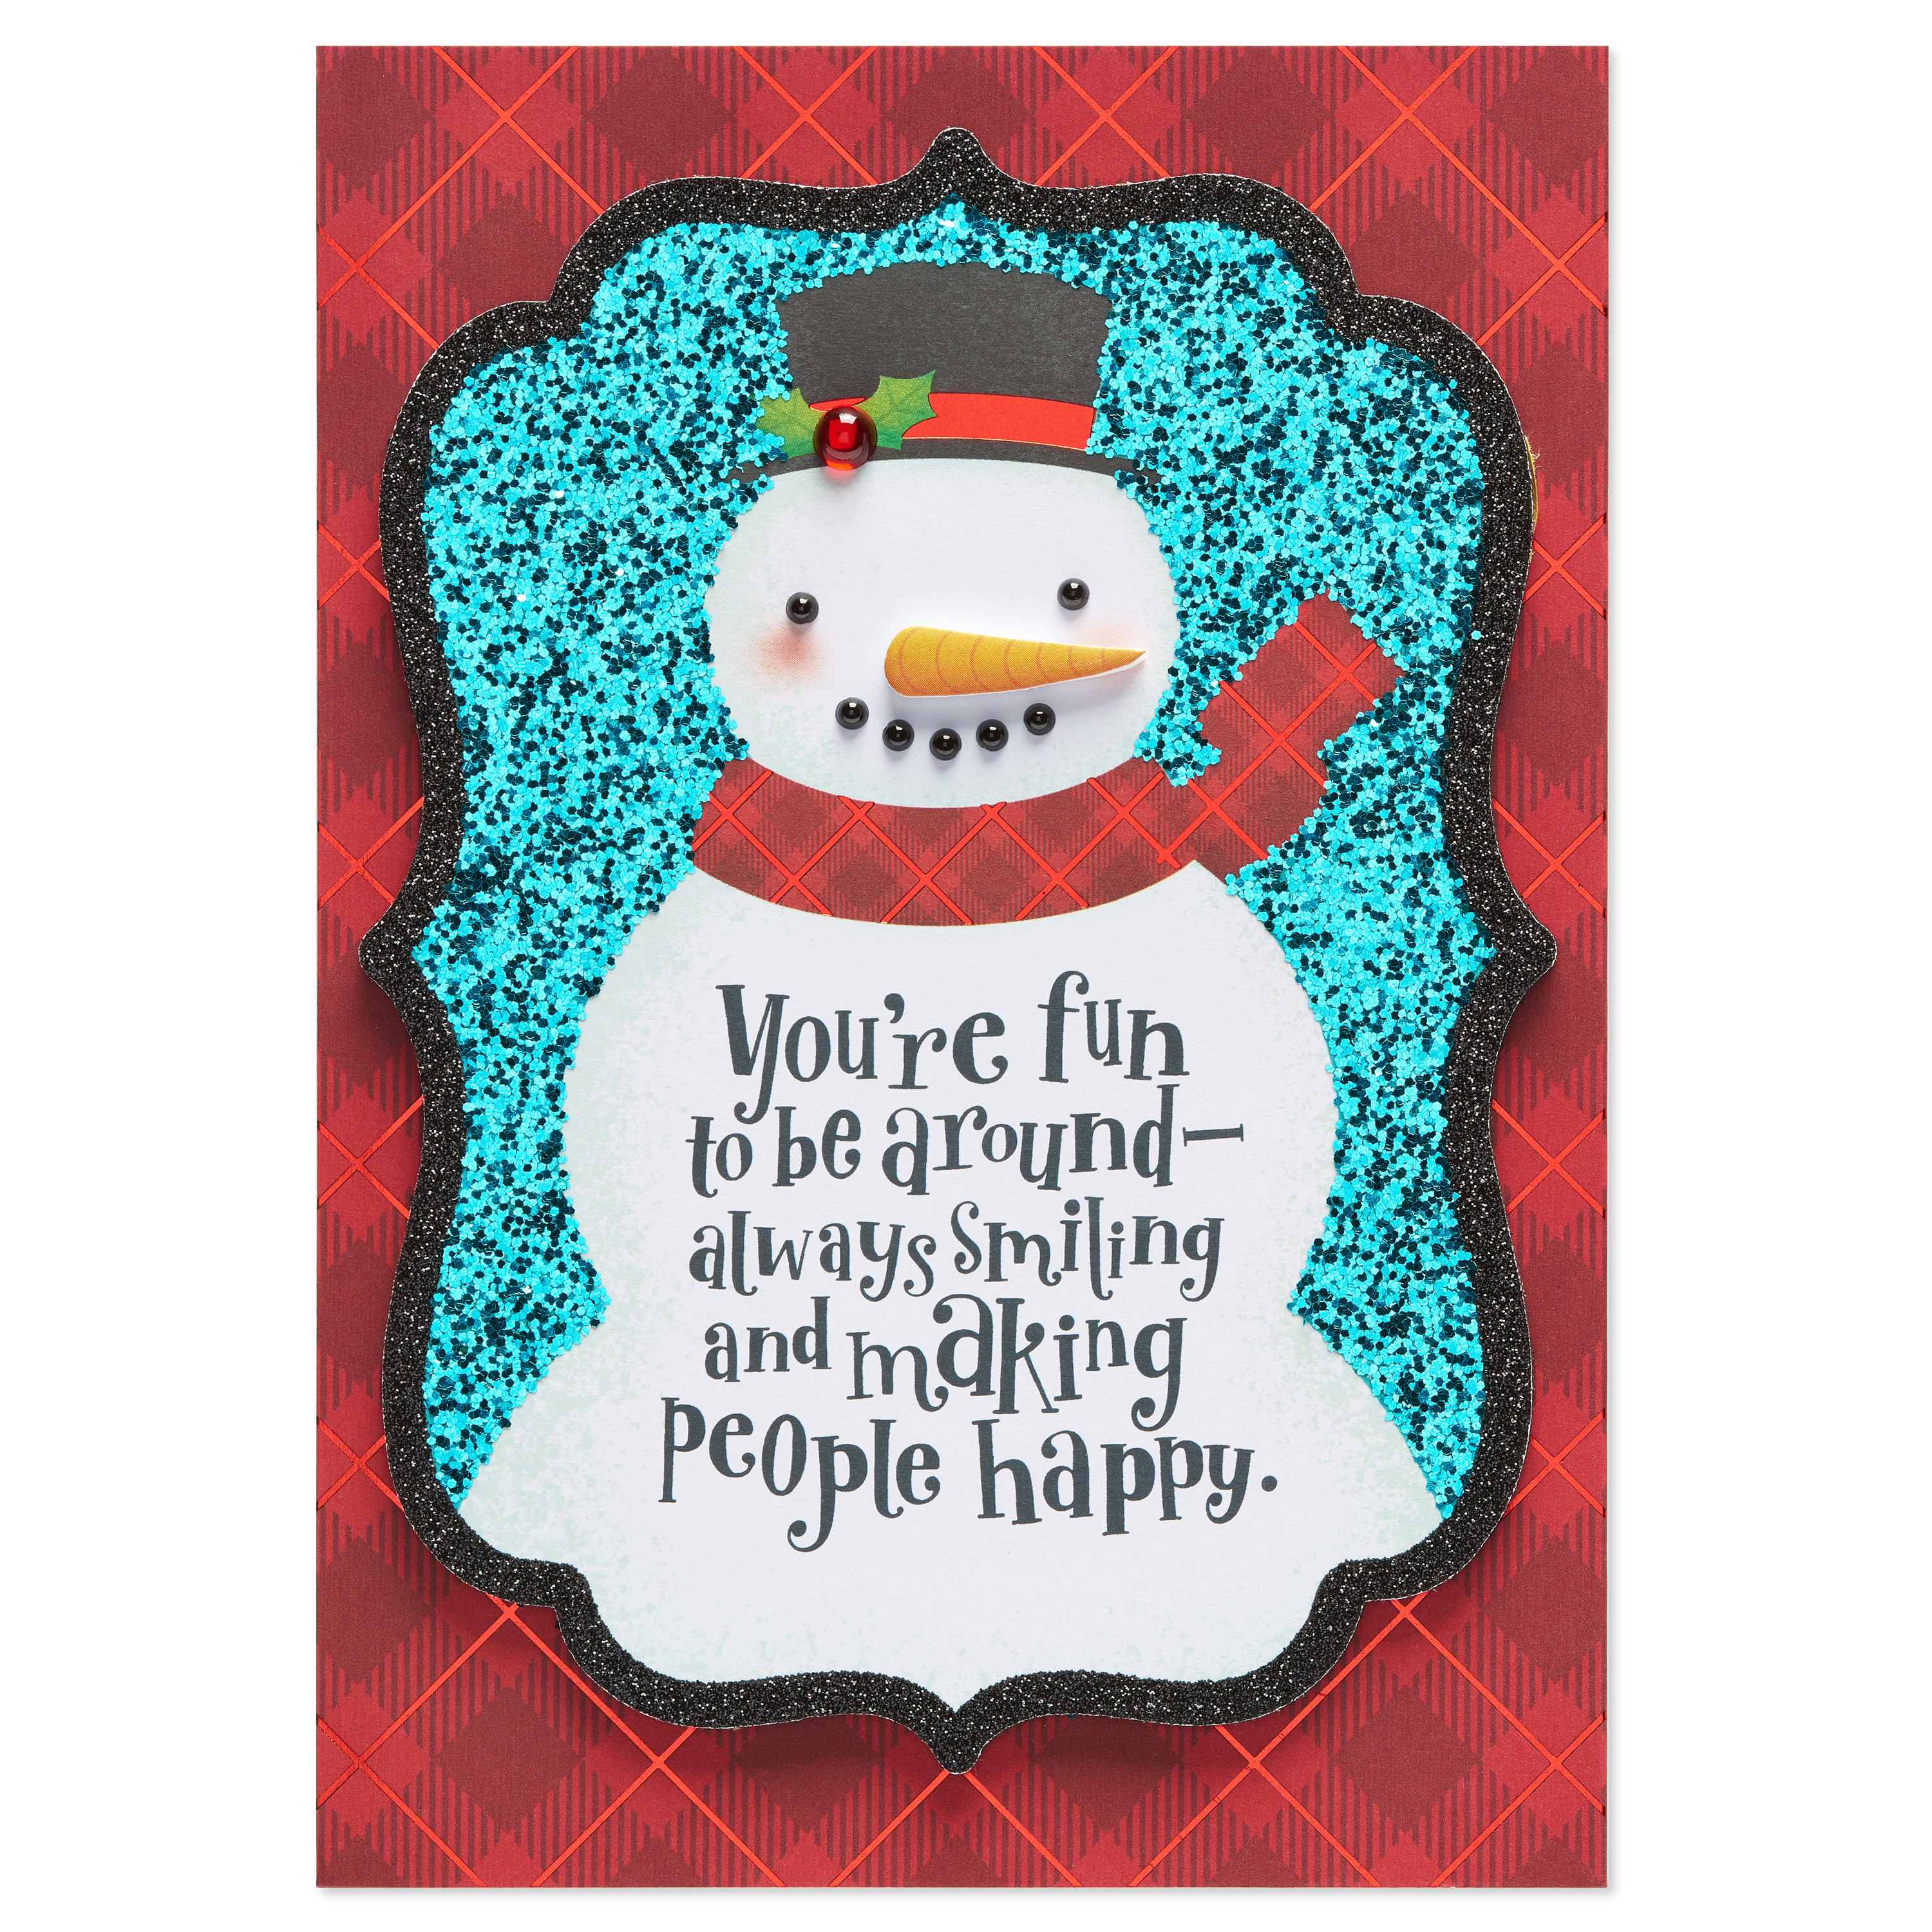 AMERICAN GREETINGS® Lily Pad Press Snowman Holiday Card with Glitter